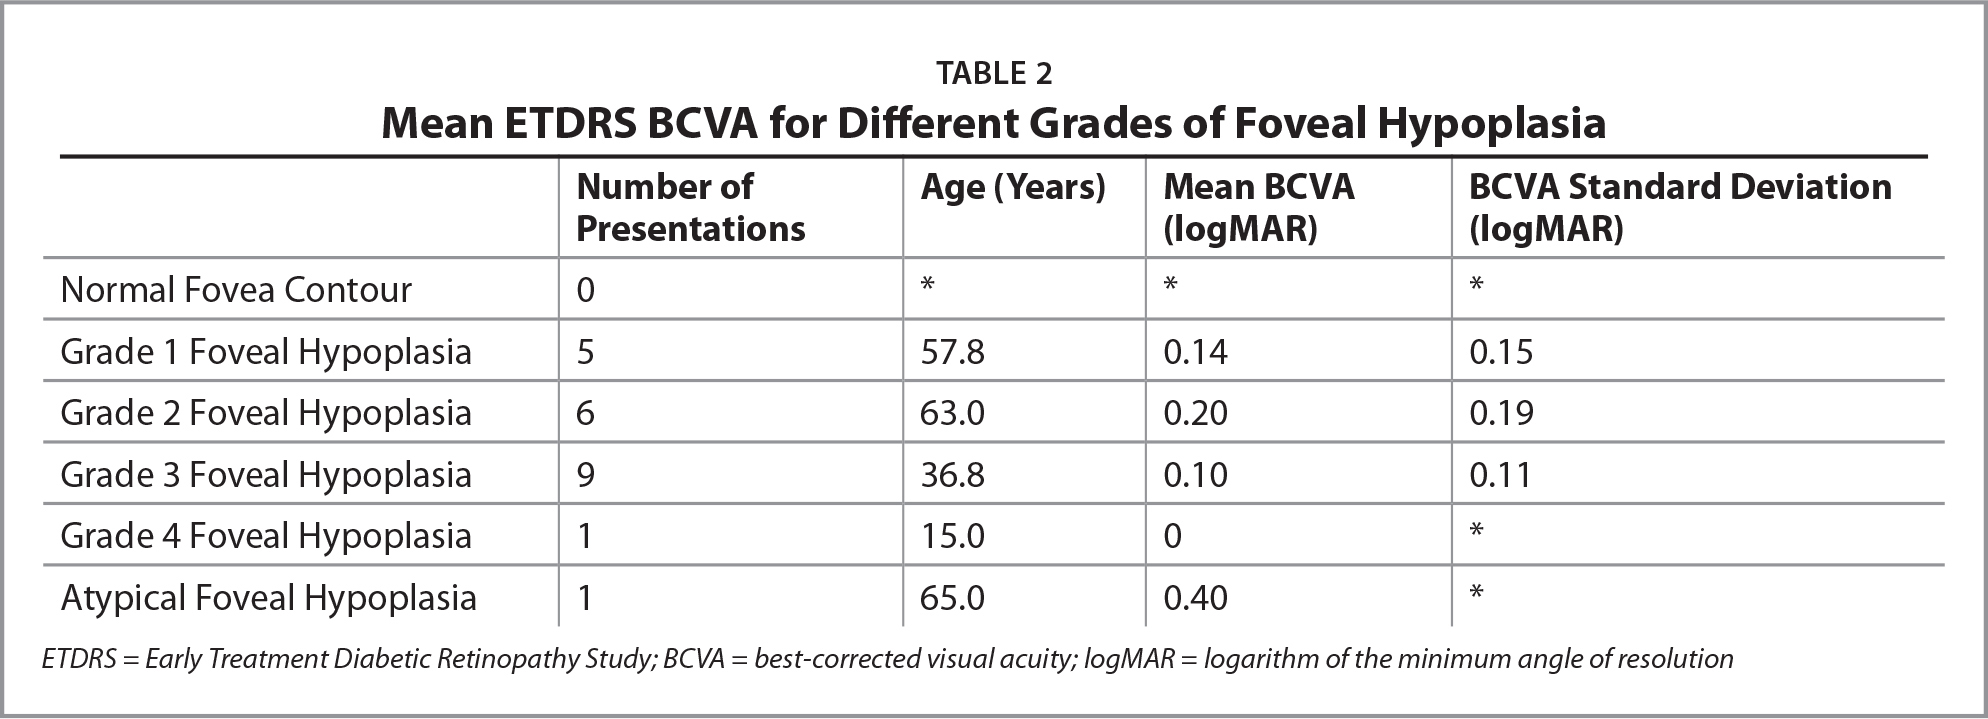 Mean ETDRS BCVA for Different Grades of Foveal Hypoplasia